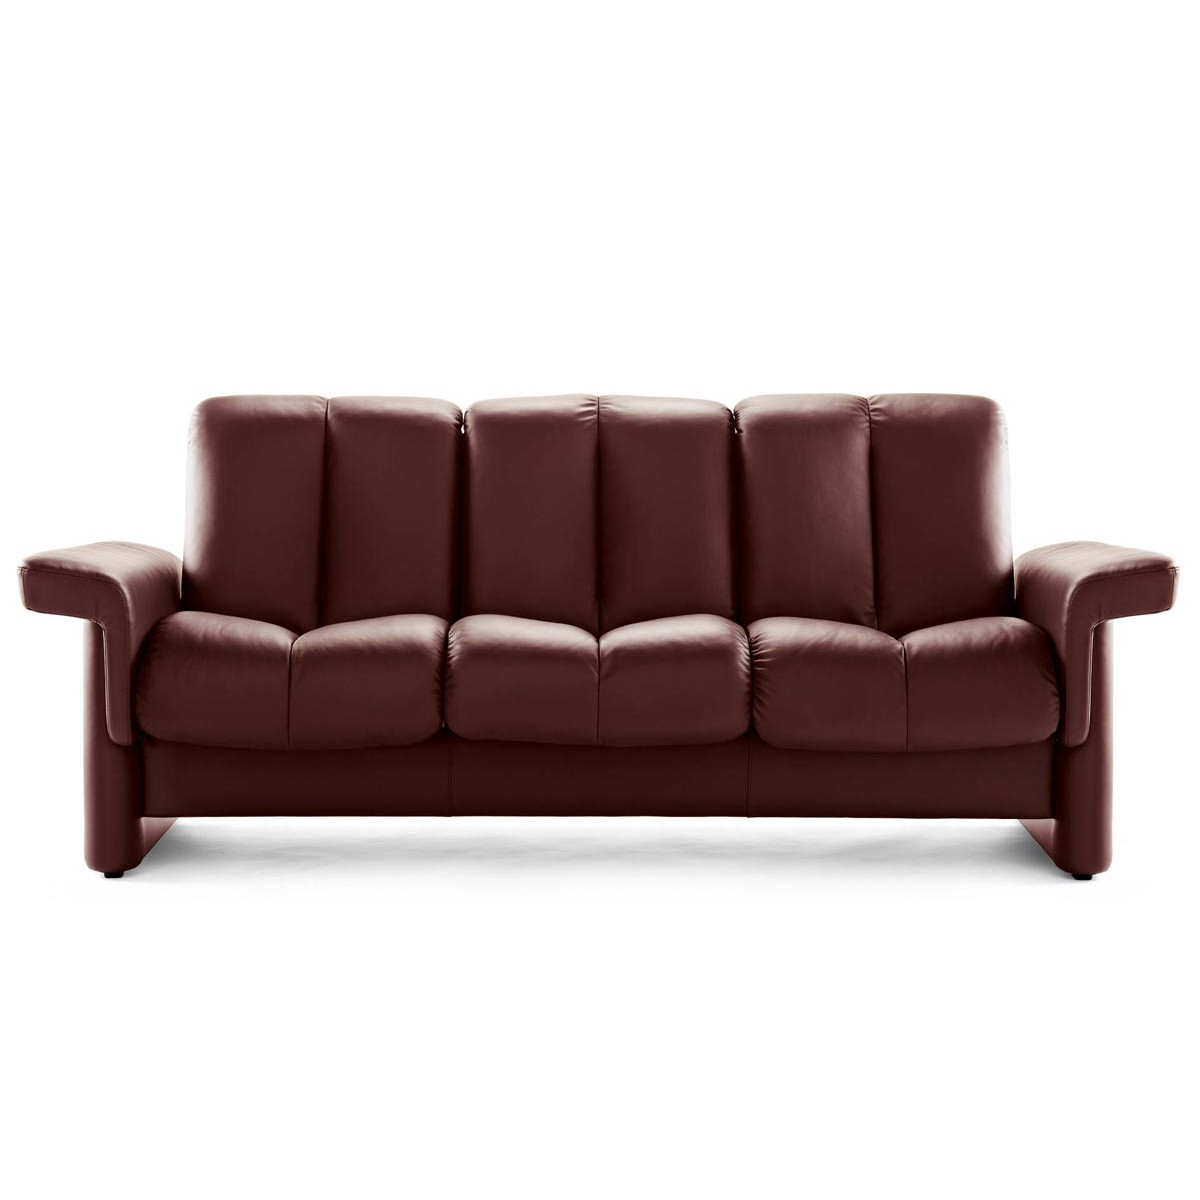 Stressless Legend Low Back Sofa From 4 By Stressless Danco Modern